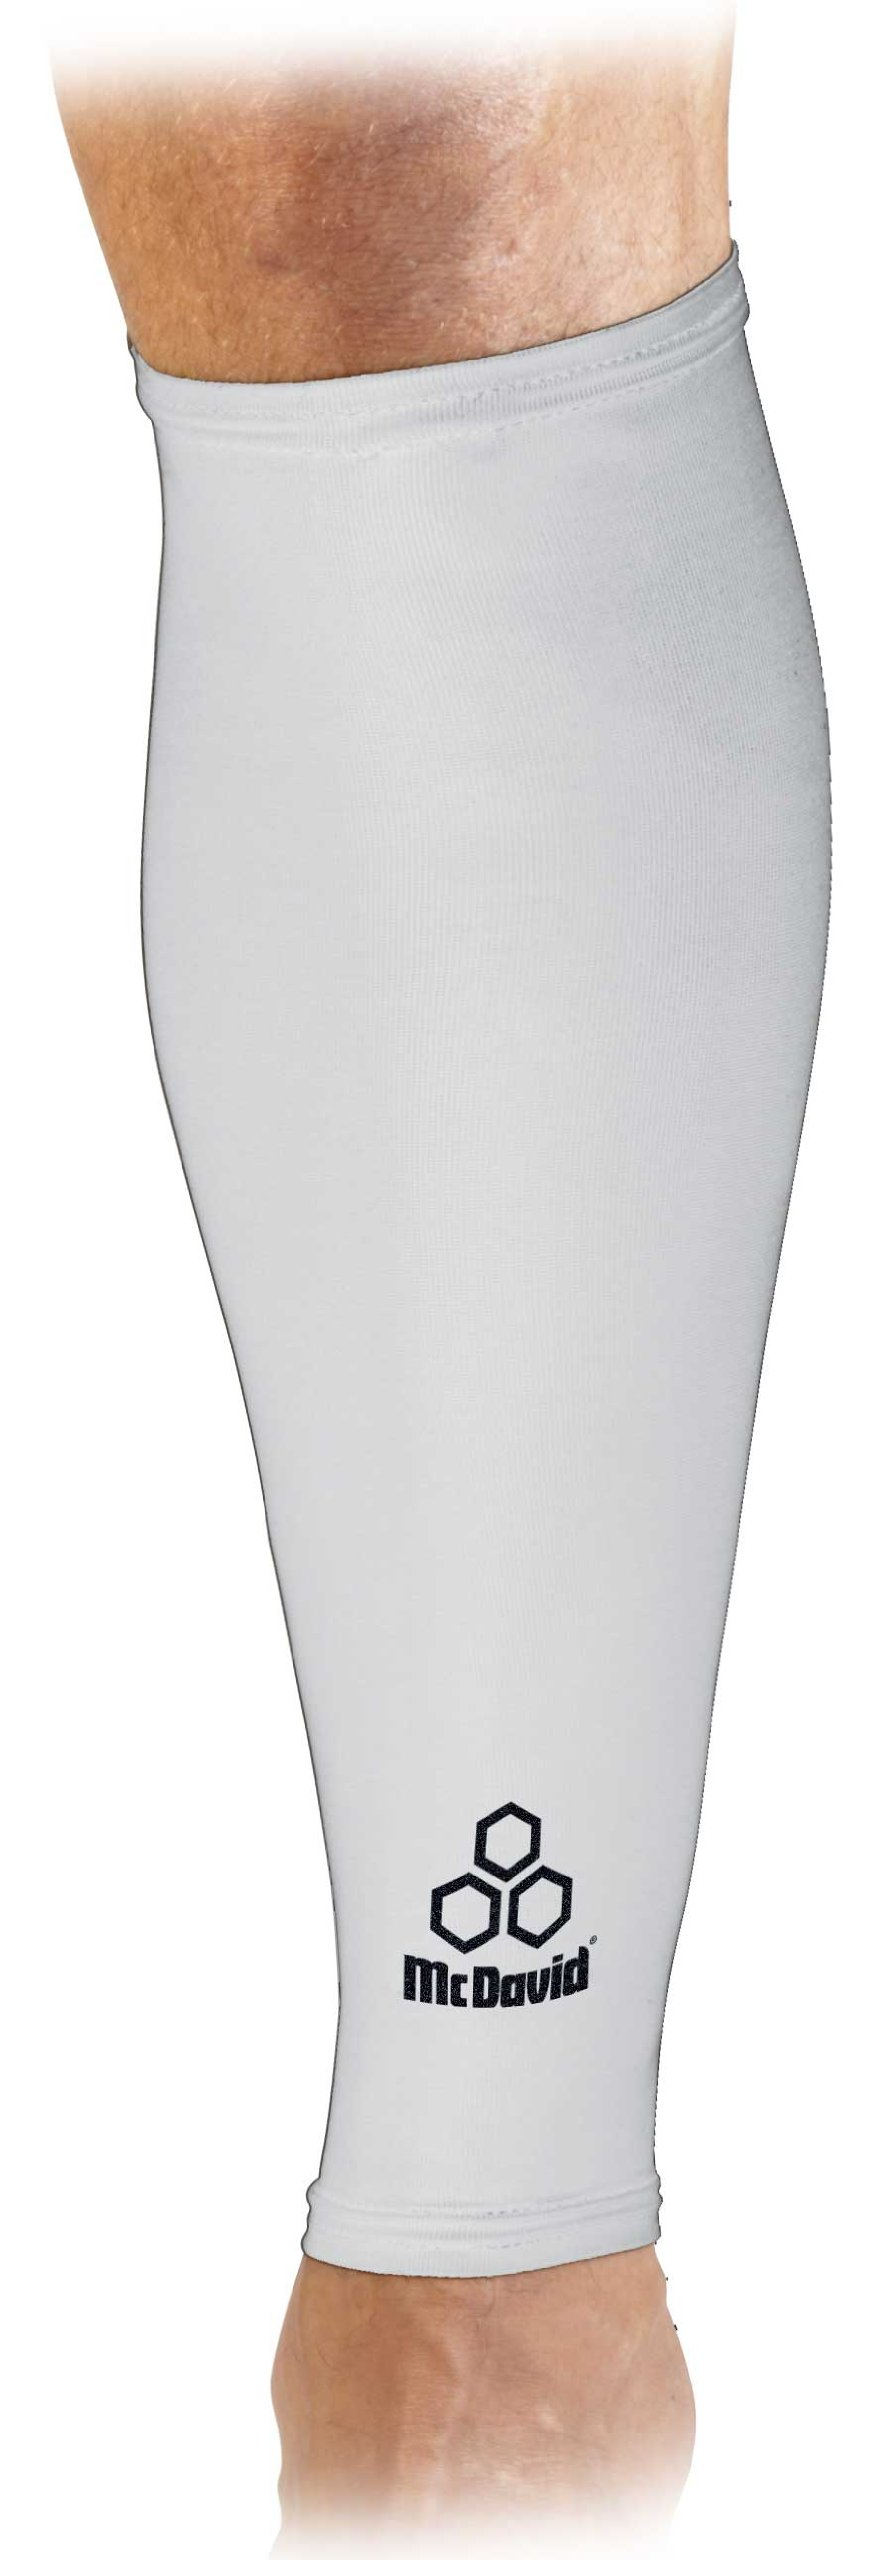 McDavid 6577 True Compression Calf Sleeve (White, Large) by McDavid